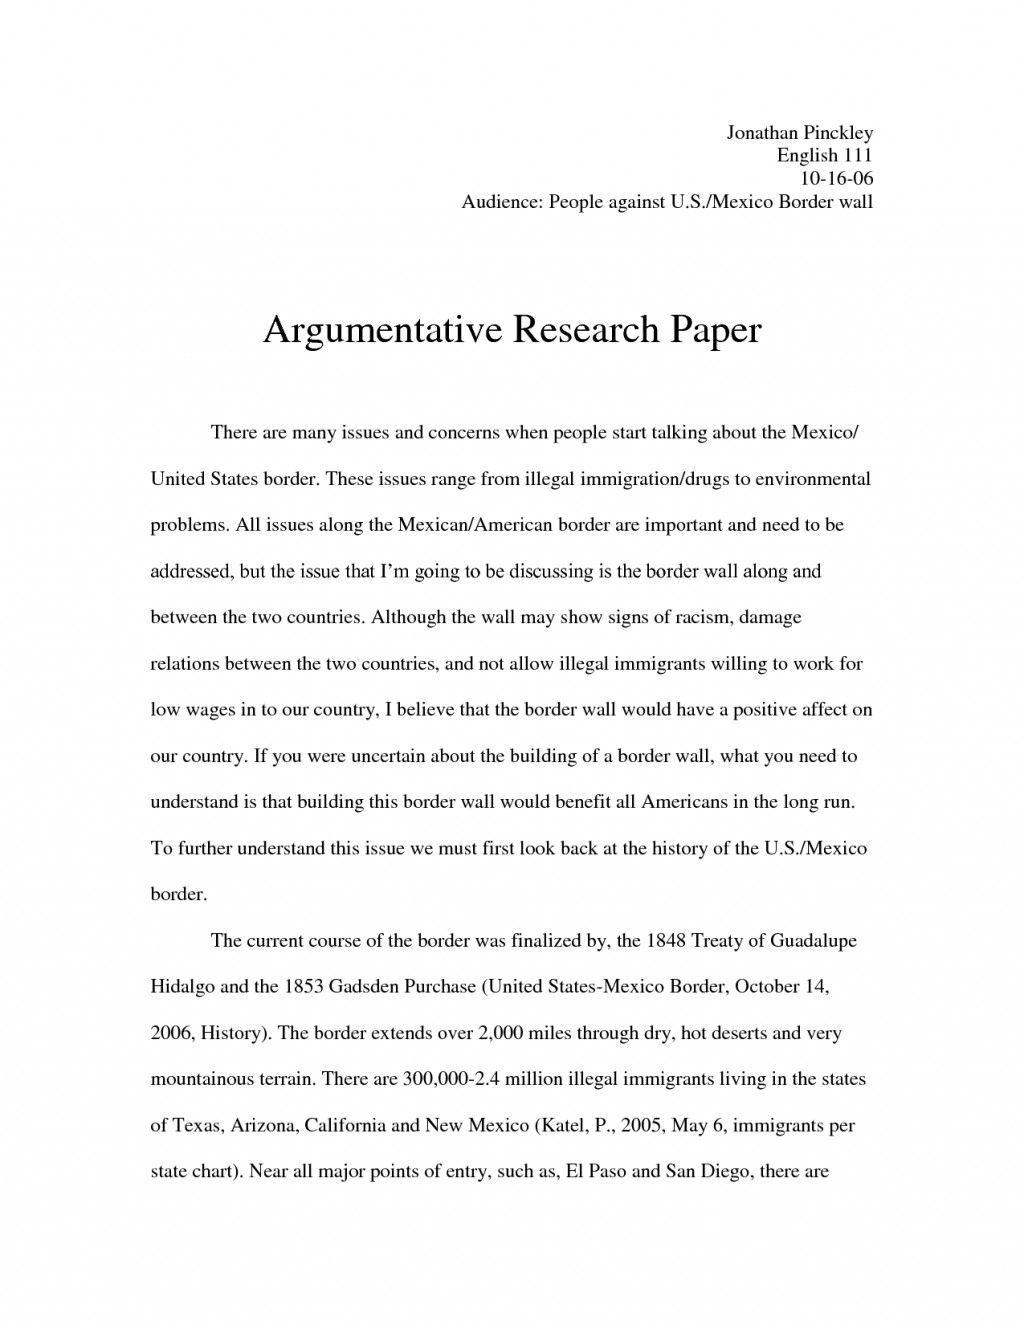 016 Research Paper Uncategorized Debate20y Argumentative Thesis High School Topics Sentence Starters Outline Worksheet Structure20 For Striking An Easy Essay Medical Interesting Large